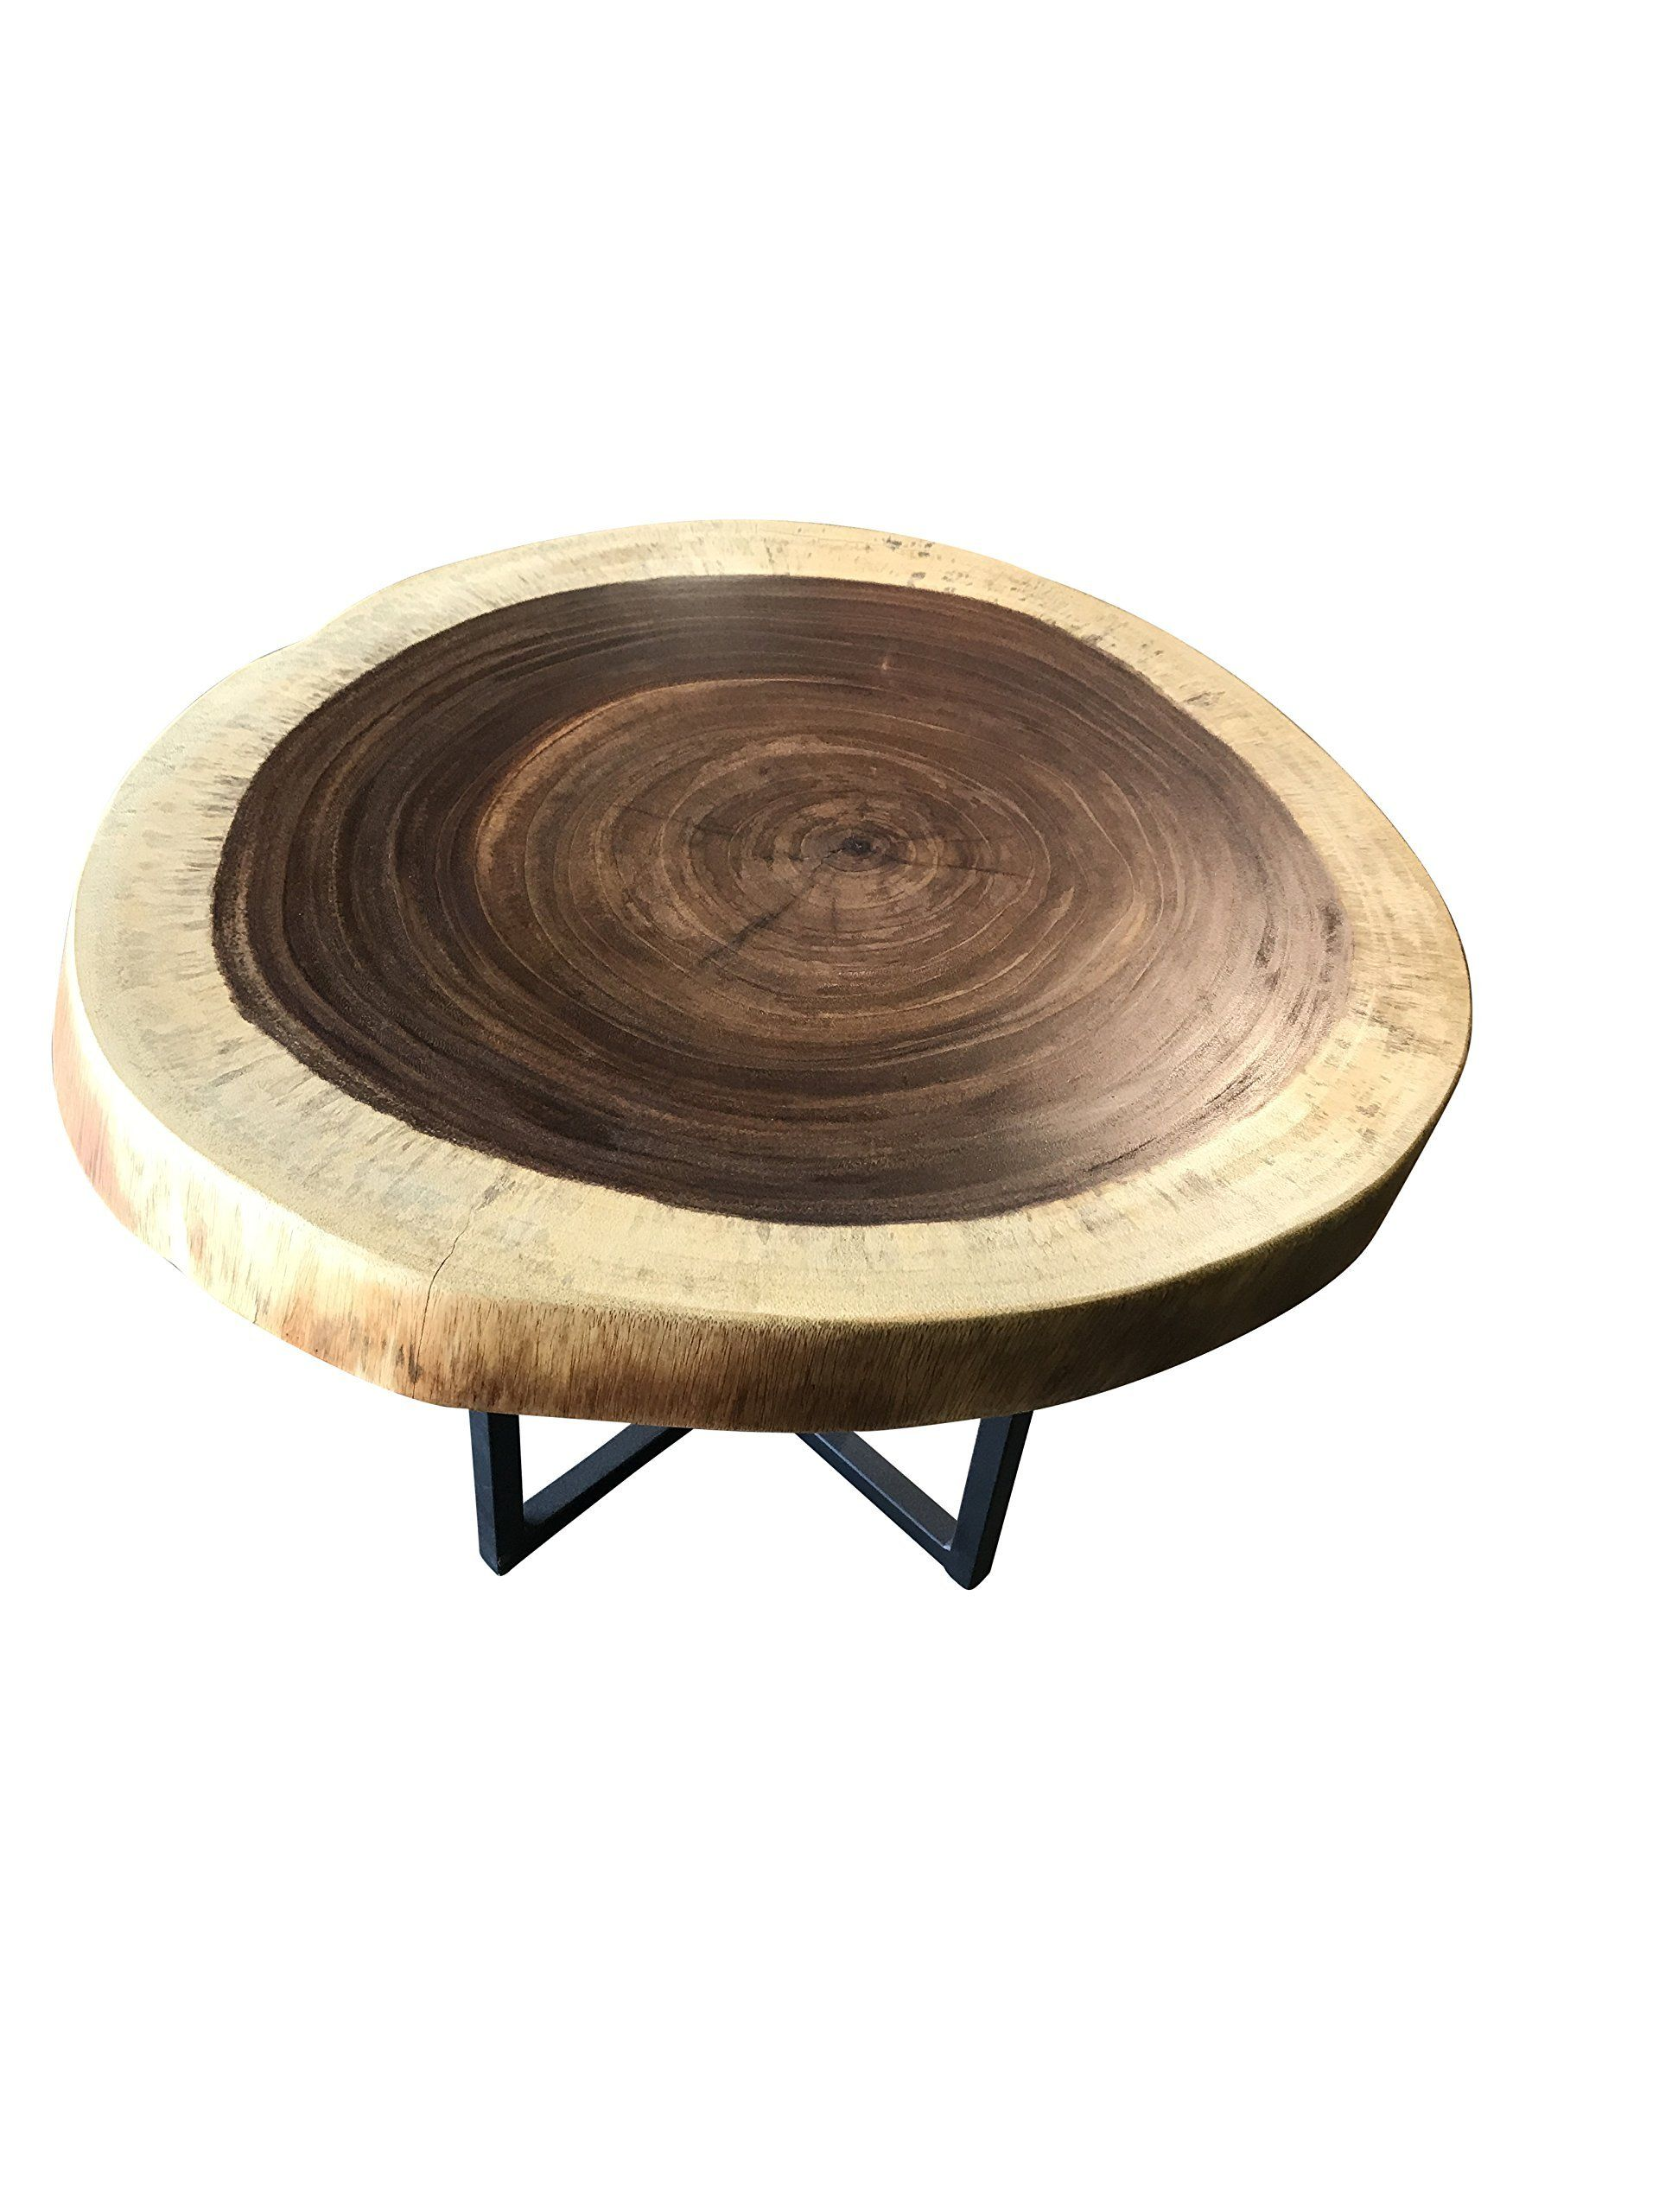 Live Edge Round Coffee Table Guanacaste More Details Could Be Located At The Picture Url This Is An Affiliate Link Coffee Table Table Round Coffee Table [ 2560 x 1920 Pixel ]